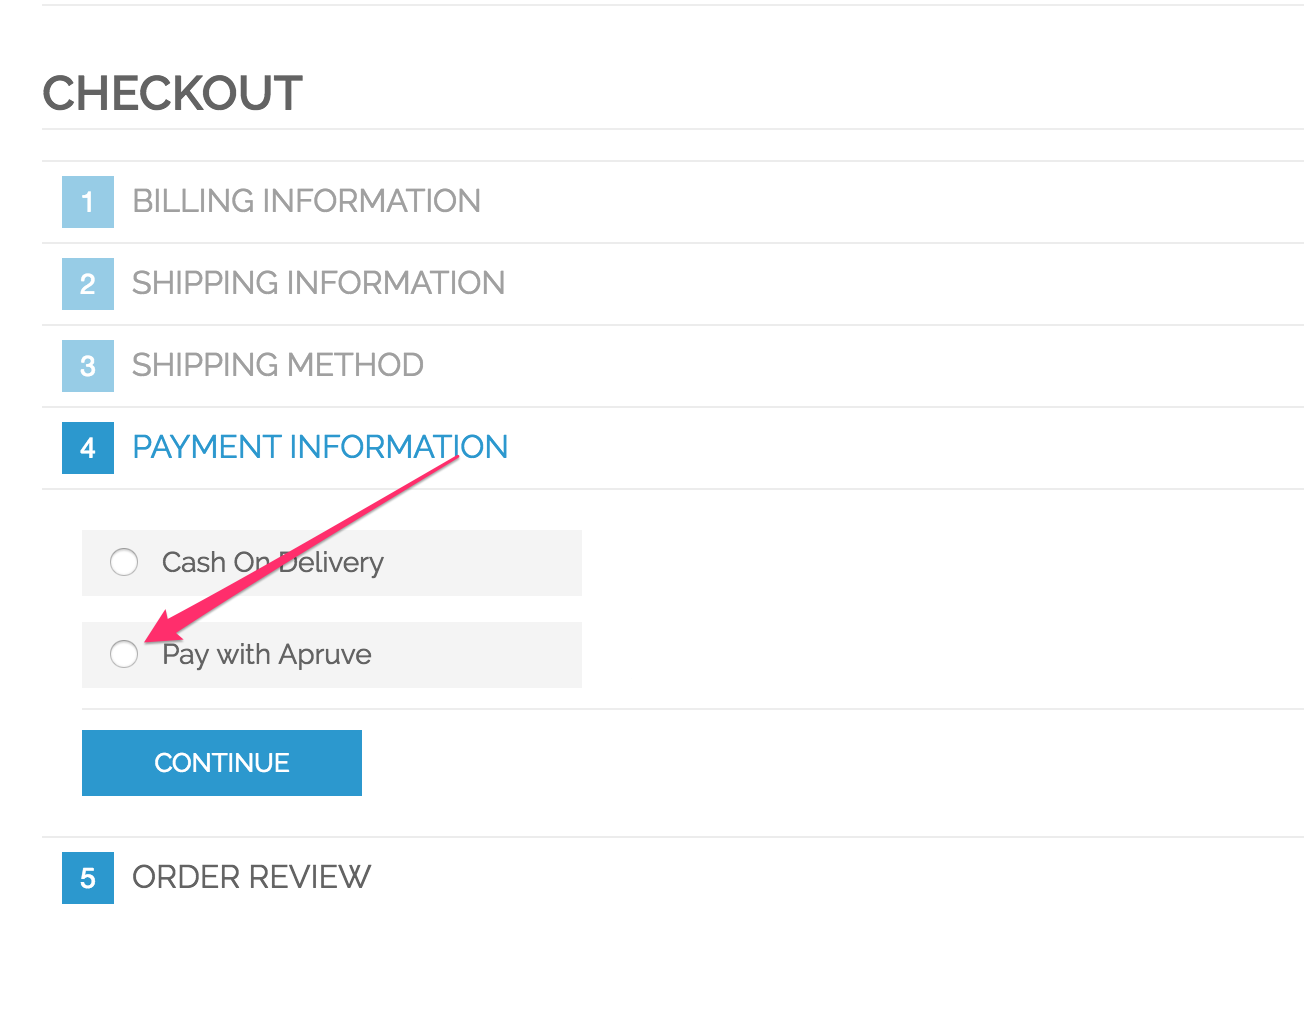 magento checkout with Apruve